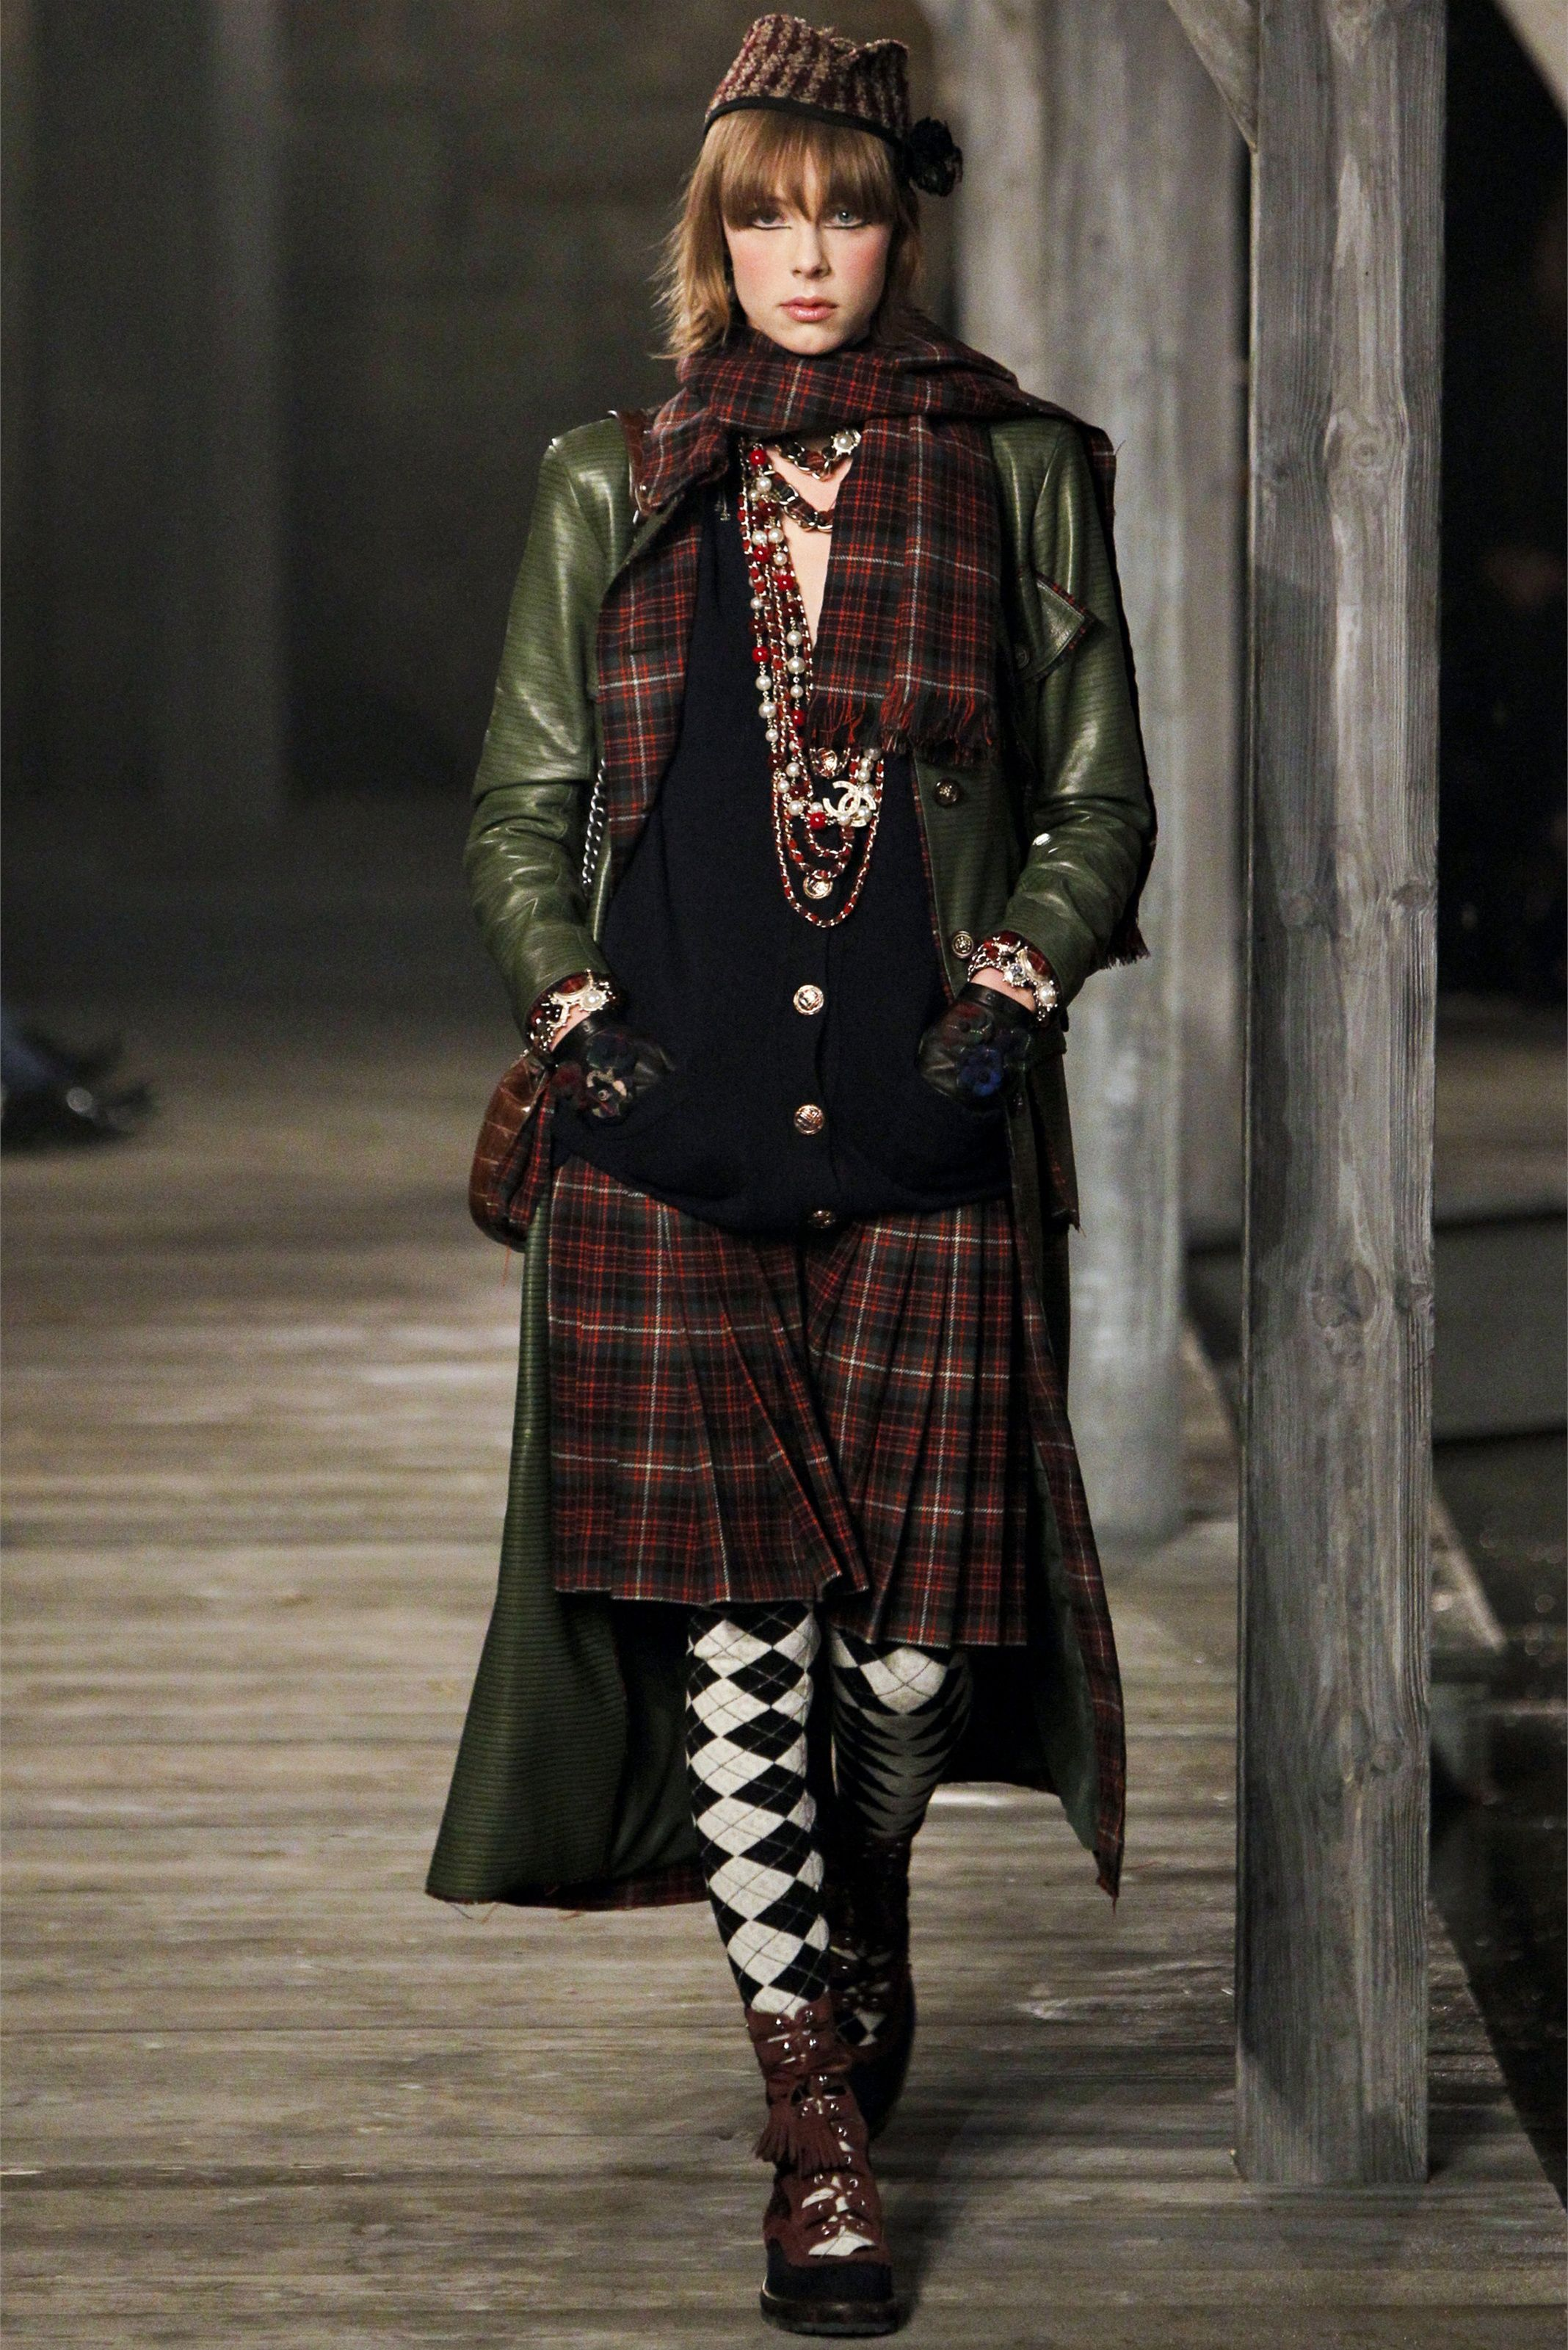 {the Chanel pre-fall 2013 collection is amazing}